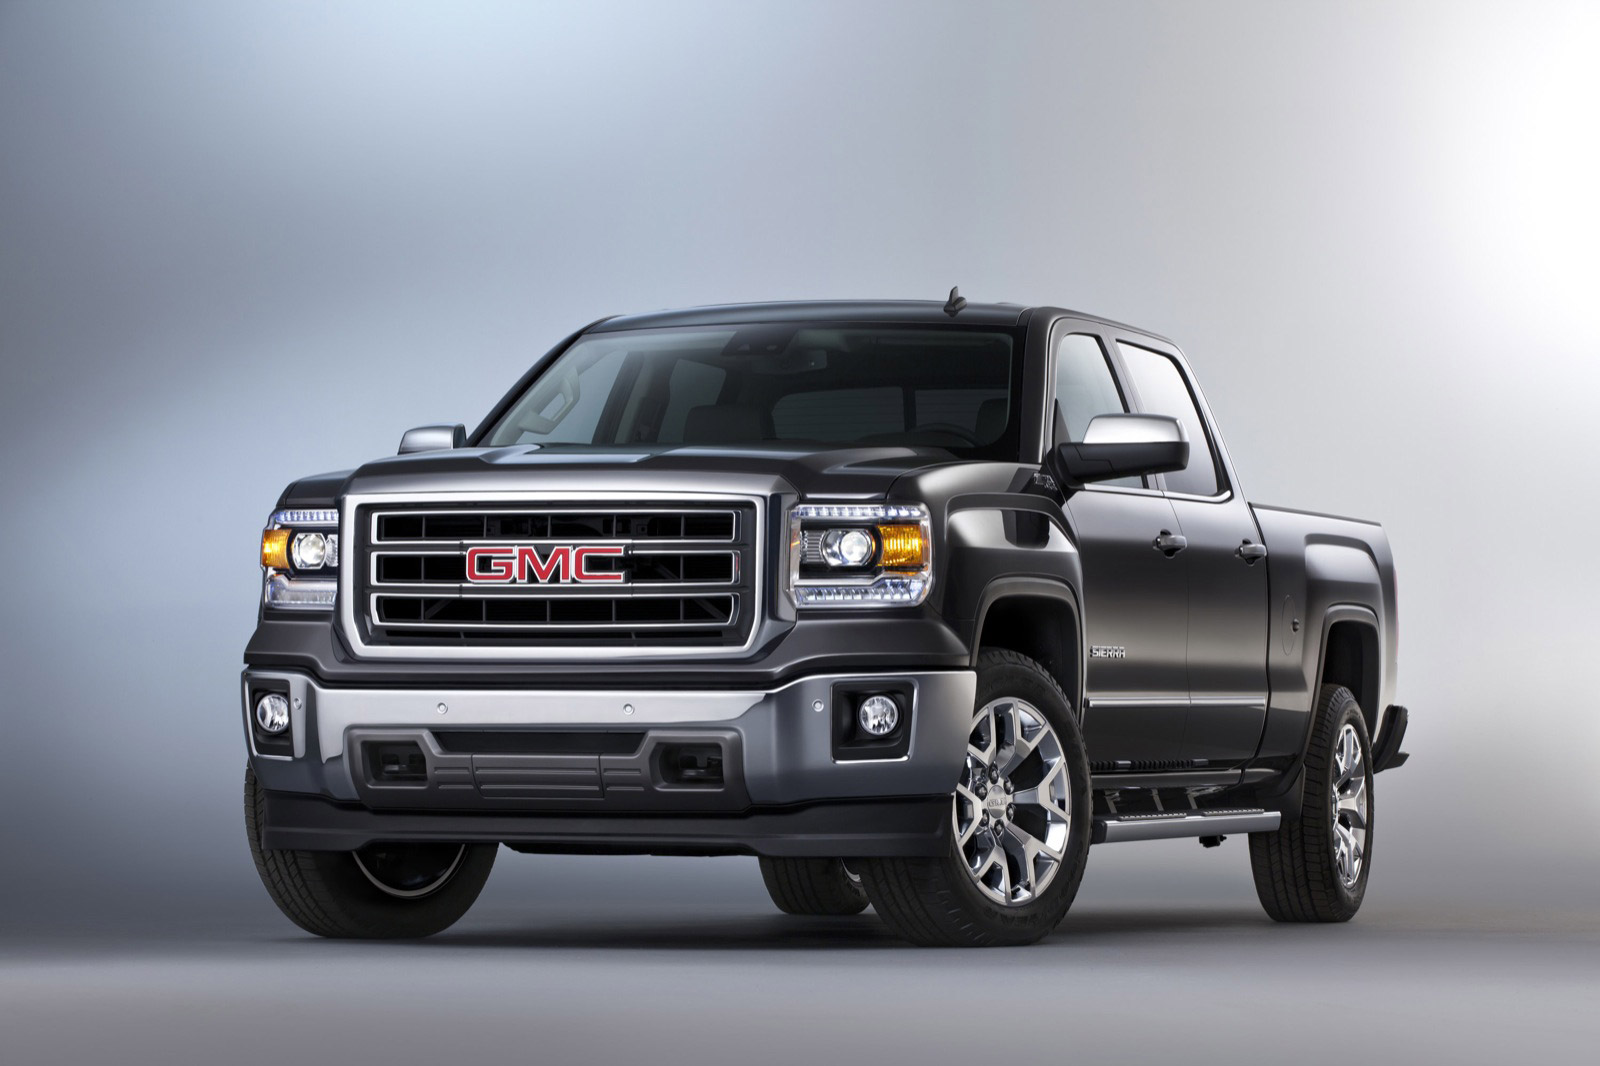 2014 gmc sierra 1500 review ratings specs prices and photos the car connection. Black Bedroom Furniture Sets. Home Design Ideas